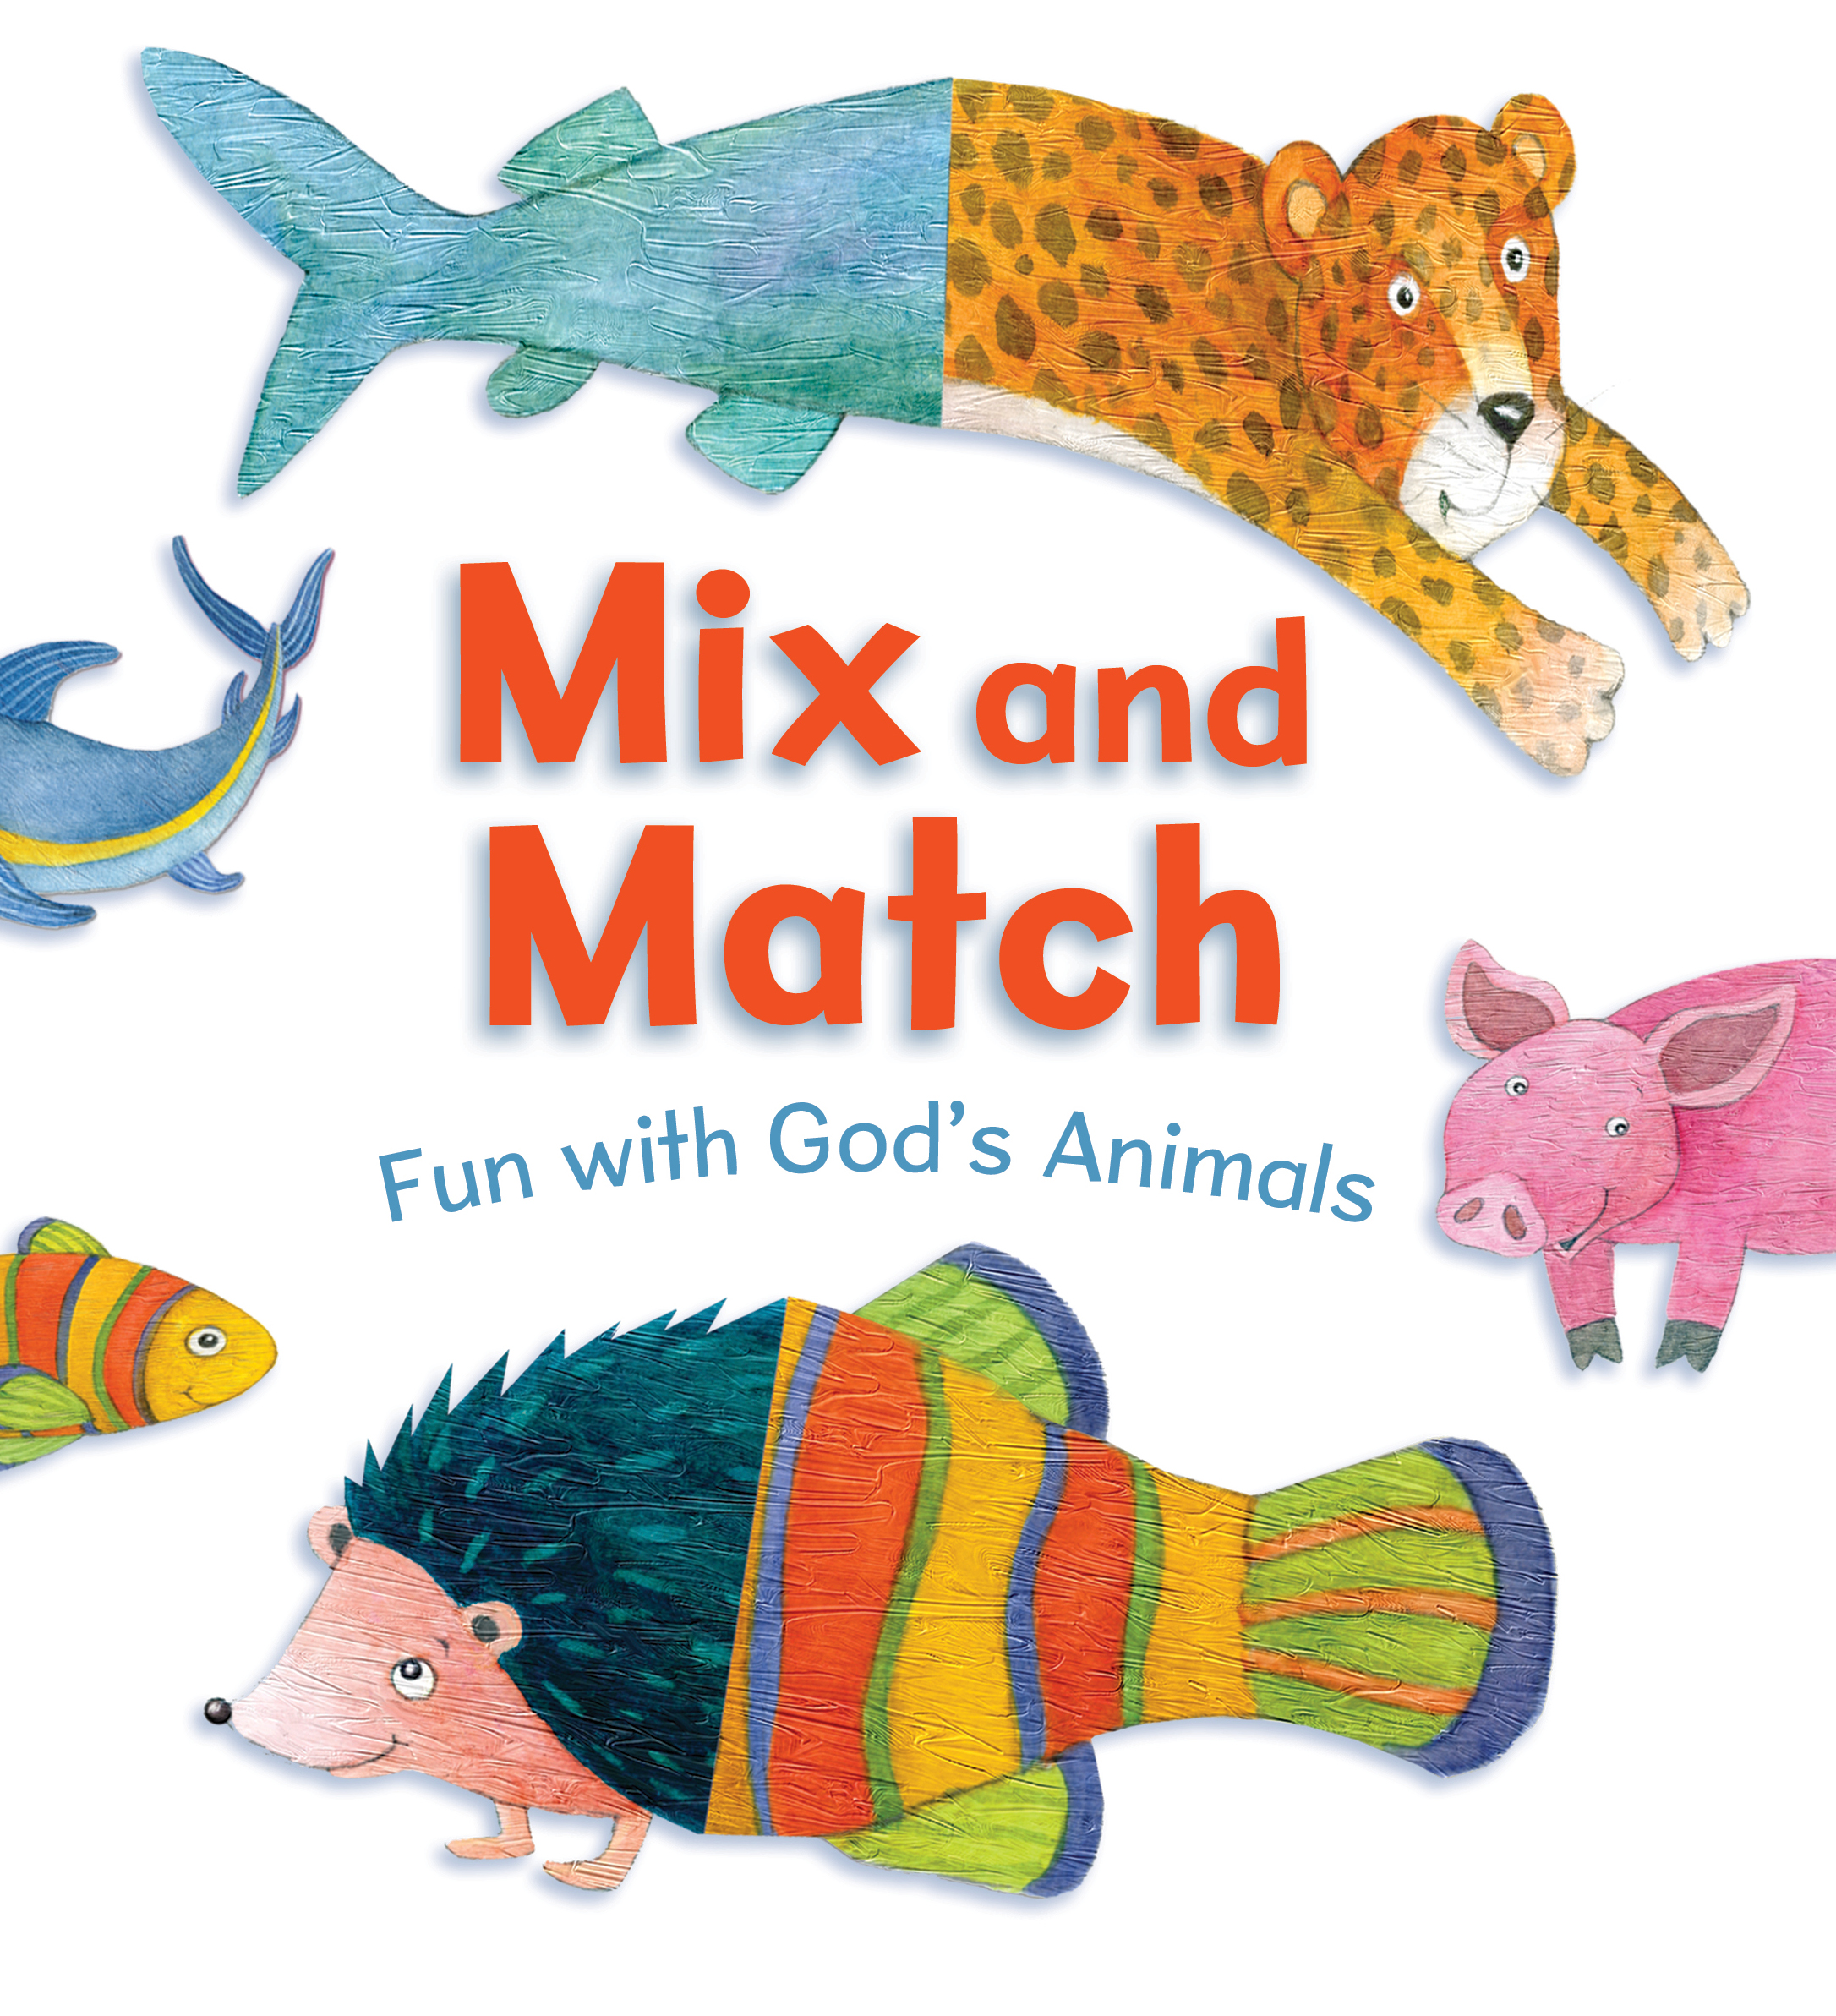 Mix and Match : Fun with God's Animals